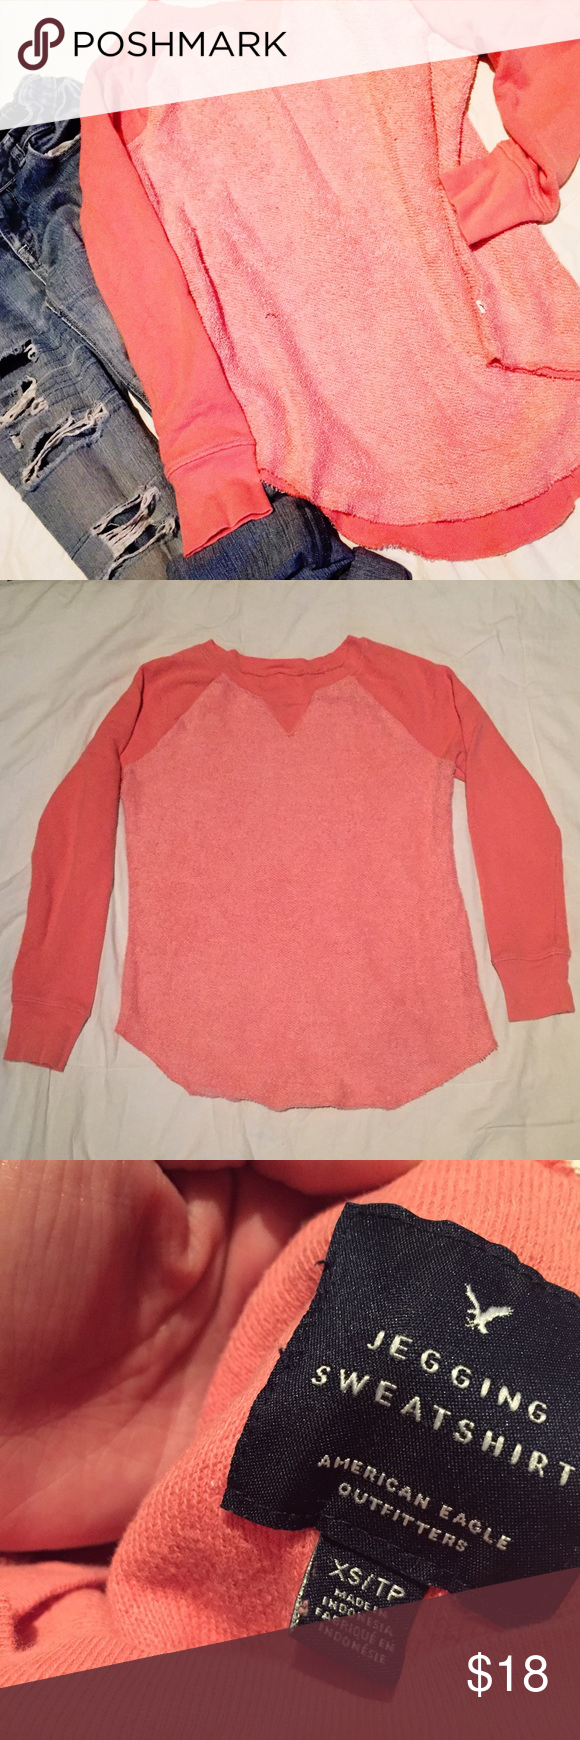 American Eagle Salmon Jegging Sweater Slightly oversized and comfortable. Beautiful salmon color. Pairs perfectly with jeans or leggings. Size XS, but fits like S. American Eagle Outfitters Sweaters Crew & Scoop Necks